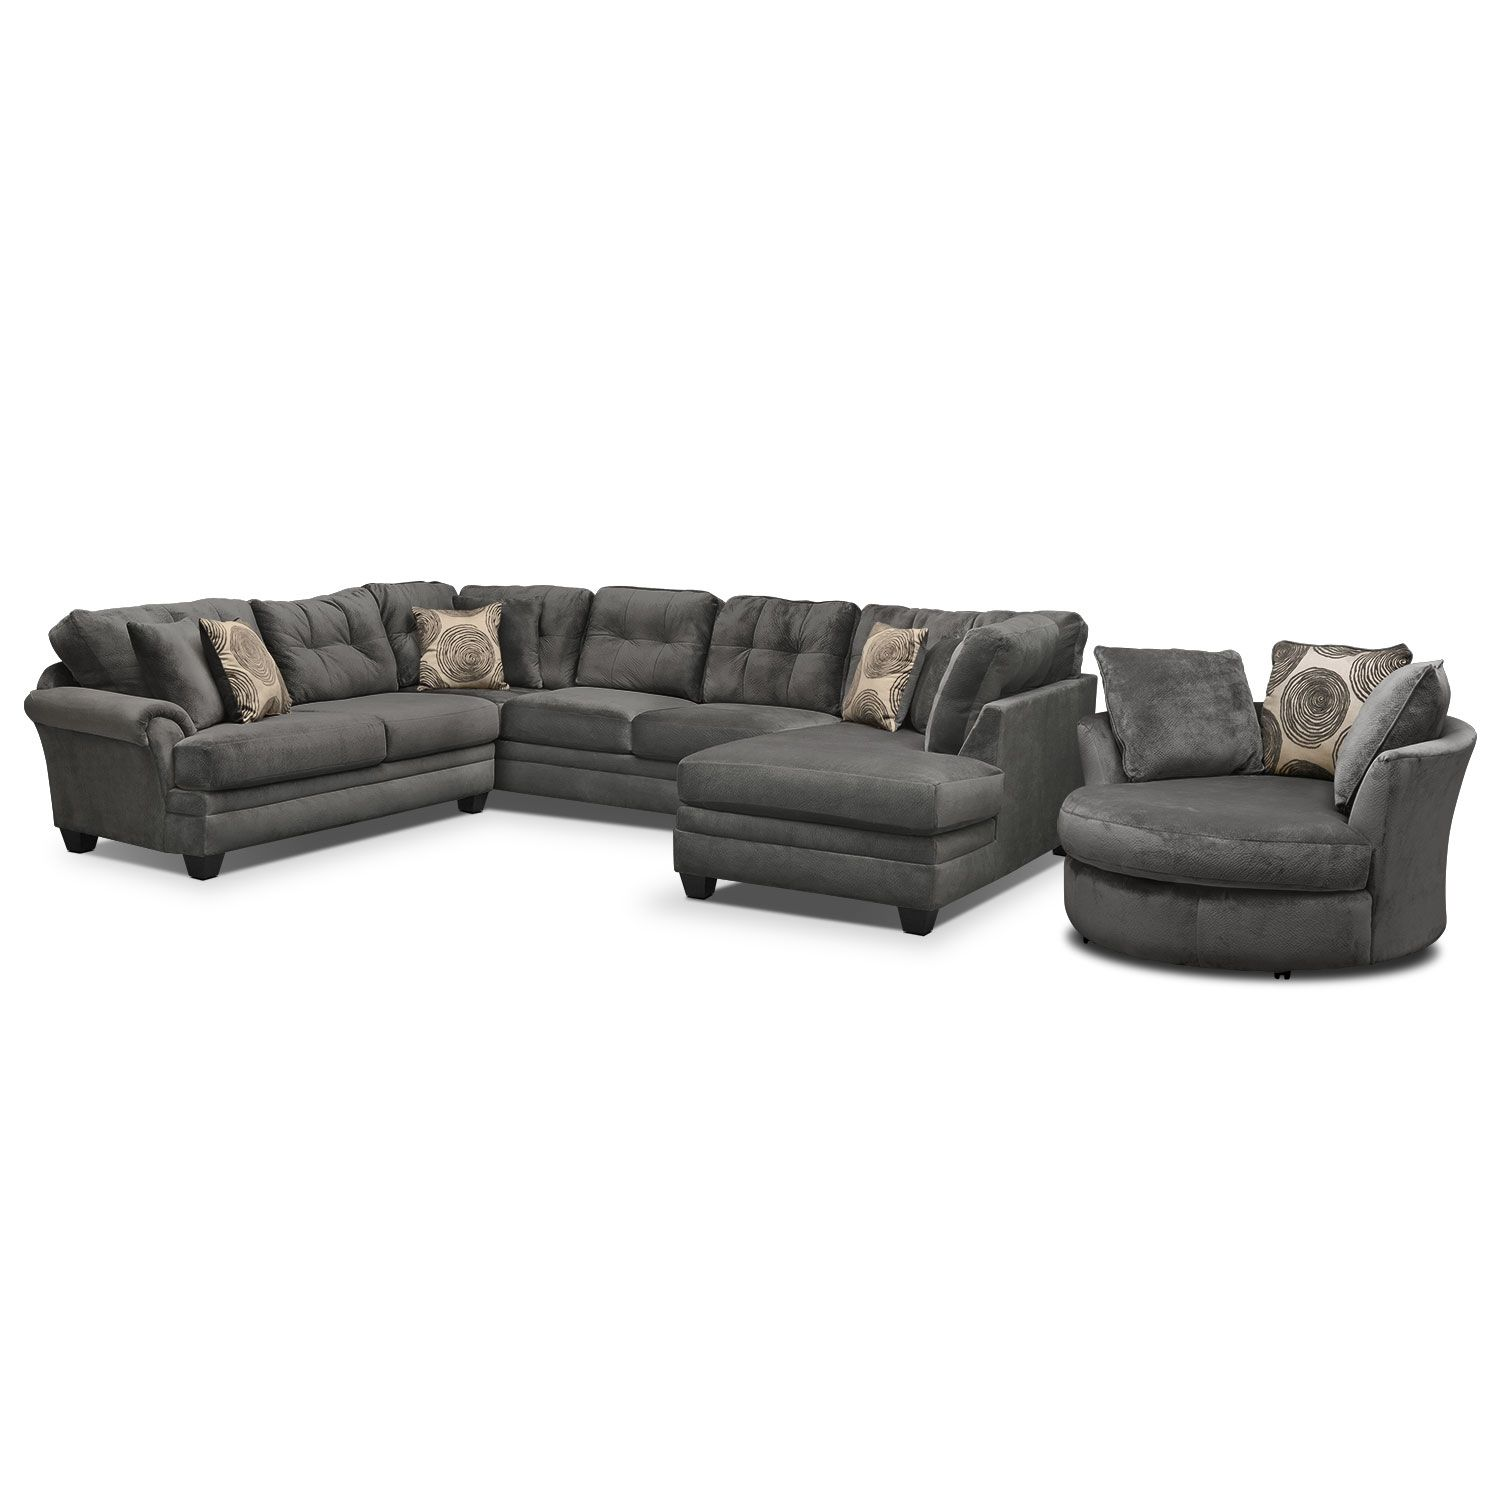 Living Room Furniture - Cordelle 3-Piece Sectional and Swivel Chair ...